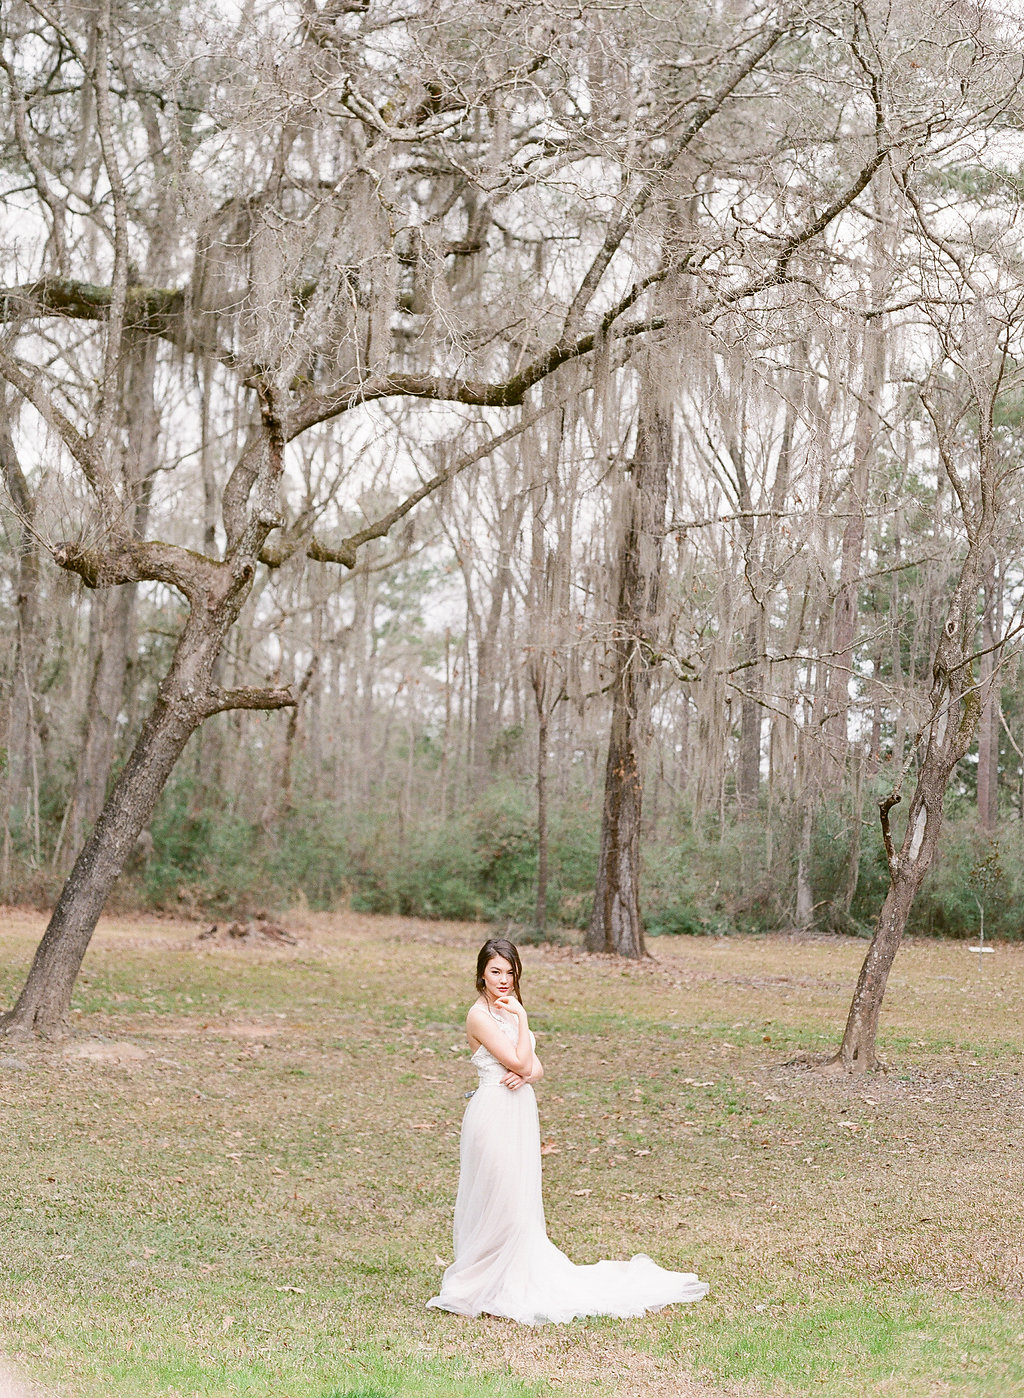 the-happy-bloom-photography-ti-adora-7553-ivory-and-beau-bridal-boutique-savannah-wedding-dresses-old-sheldon-ruins-savannah-wedding-planner-savannah-event-designer-savannah-weddings-savannah-film-photographer-savannah-photography-workshop-4.jpg